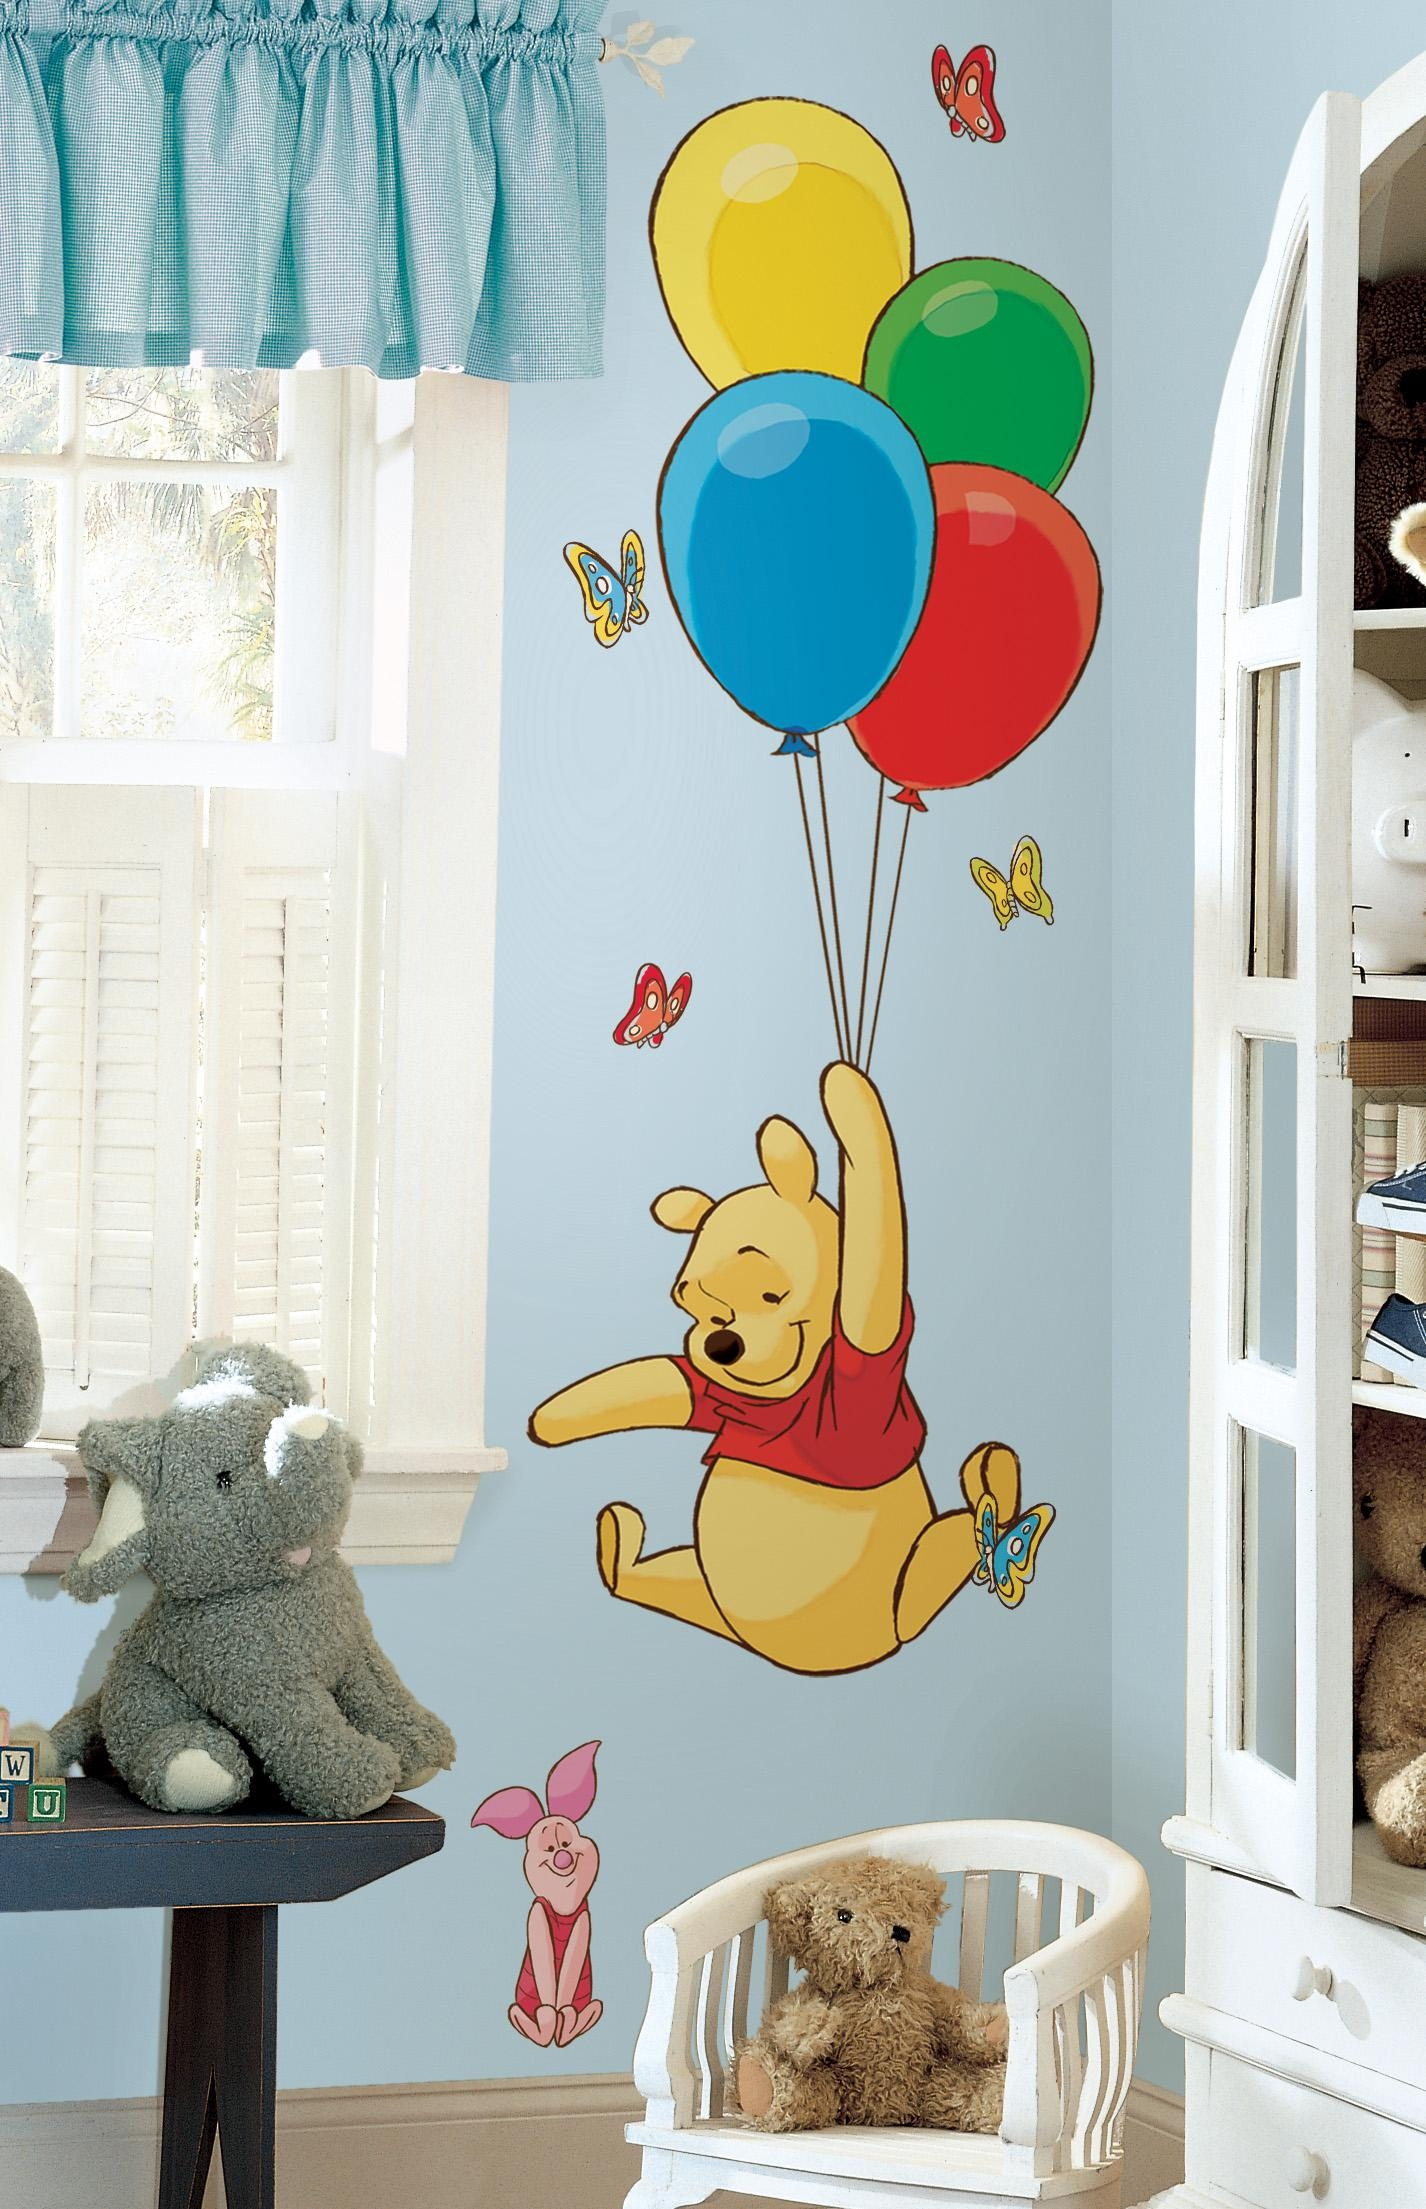 Winnie The Pooh Decor | Colorful Kids Rooms Regarding Winnie The Pooh Wall Art For Nursery (Image 16 of 20)